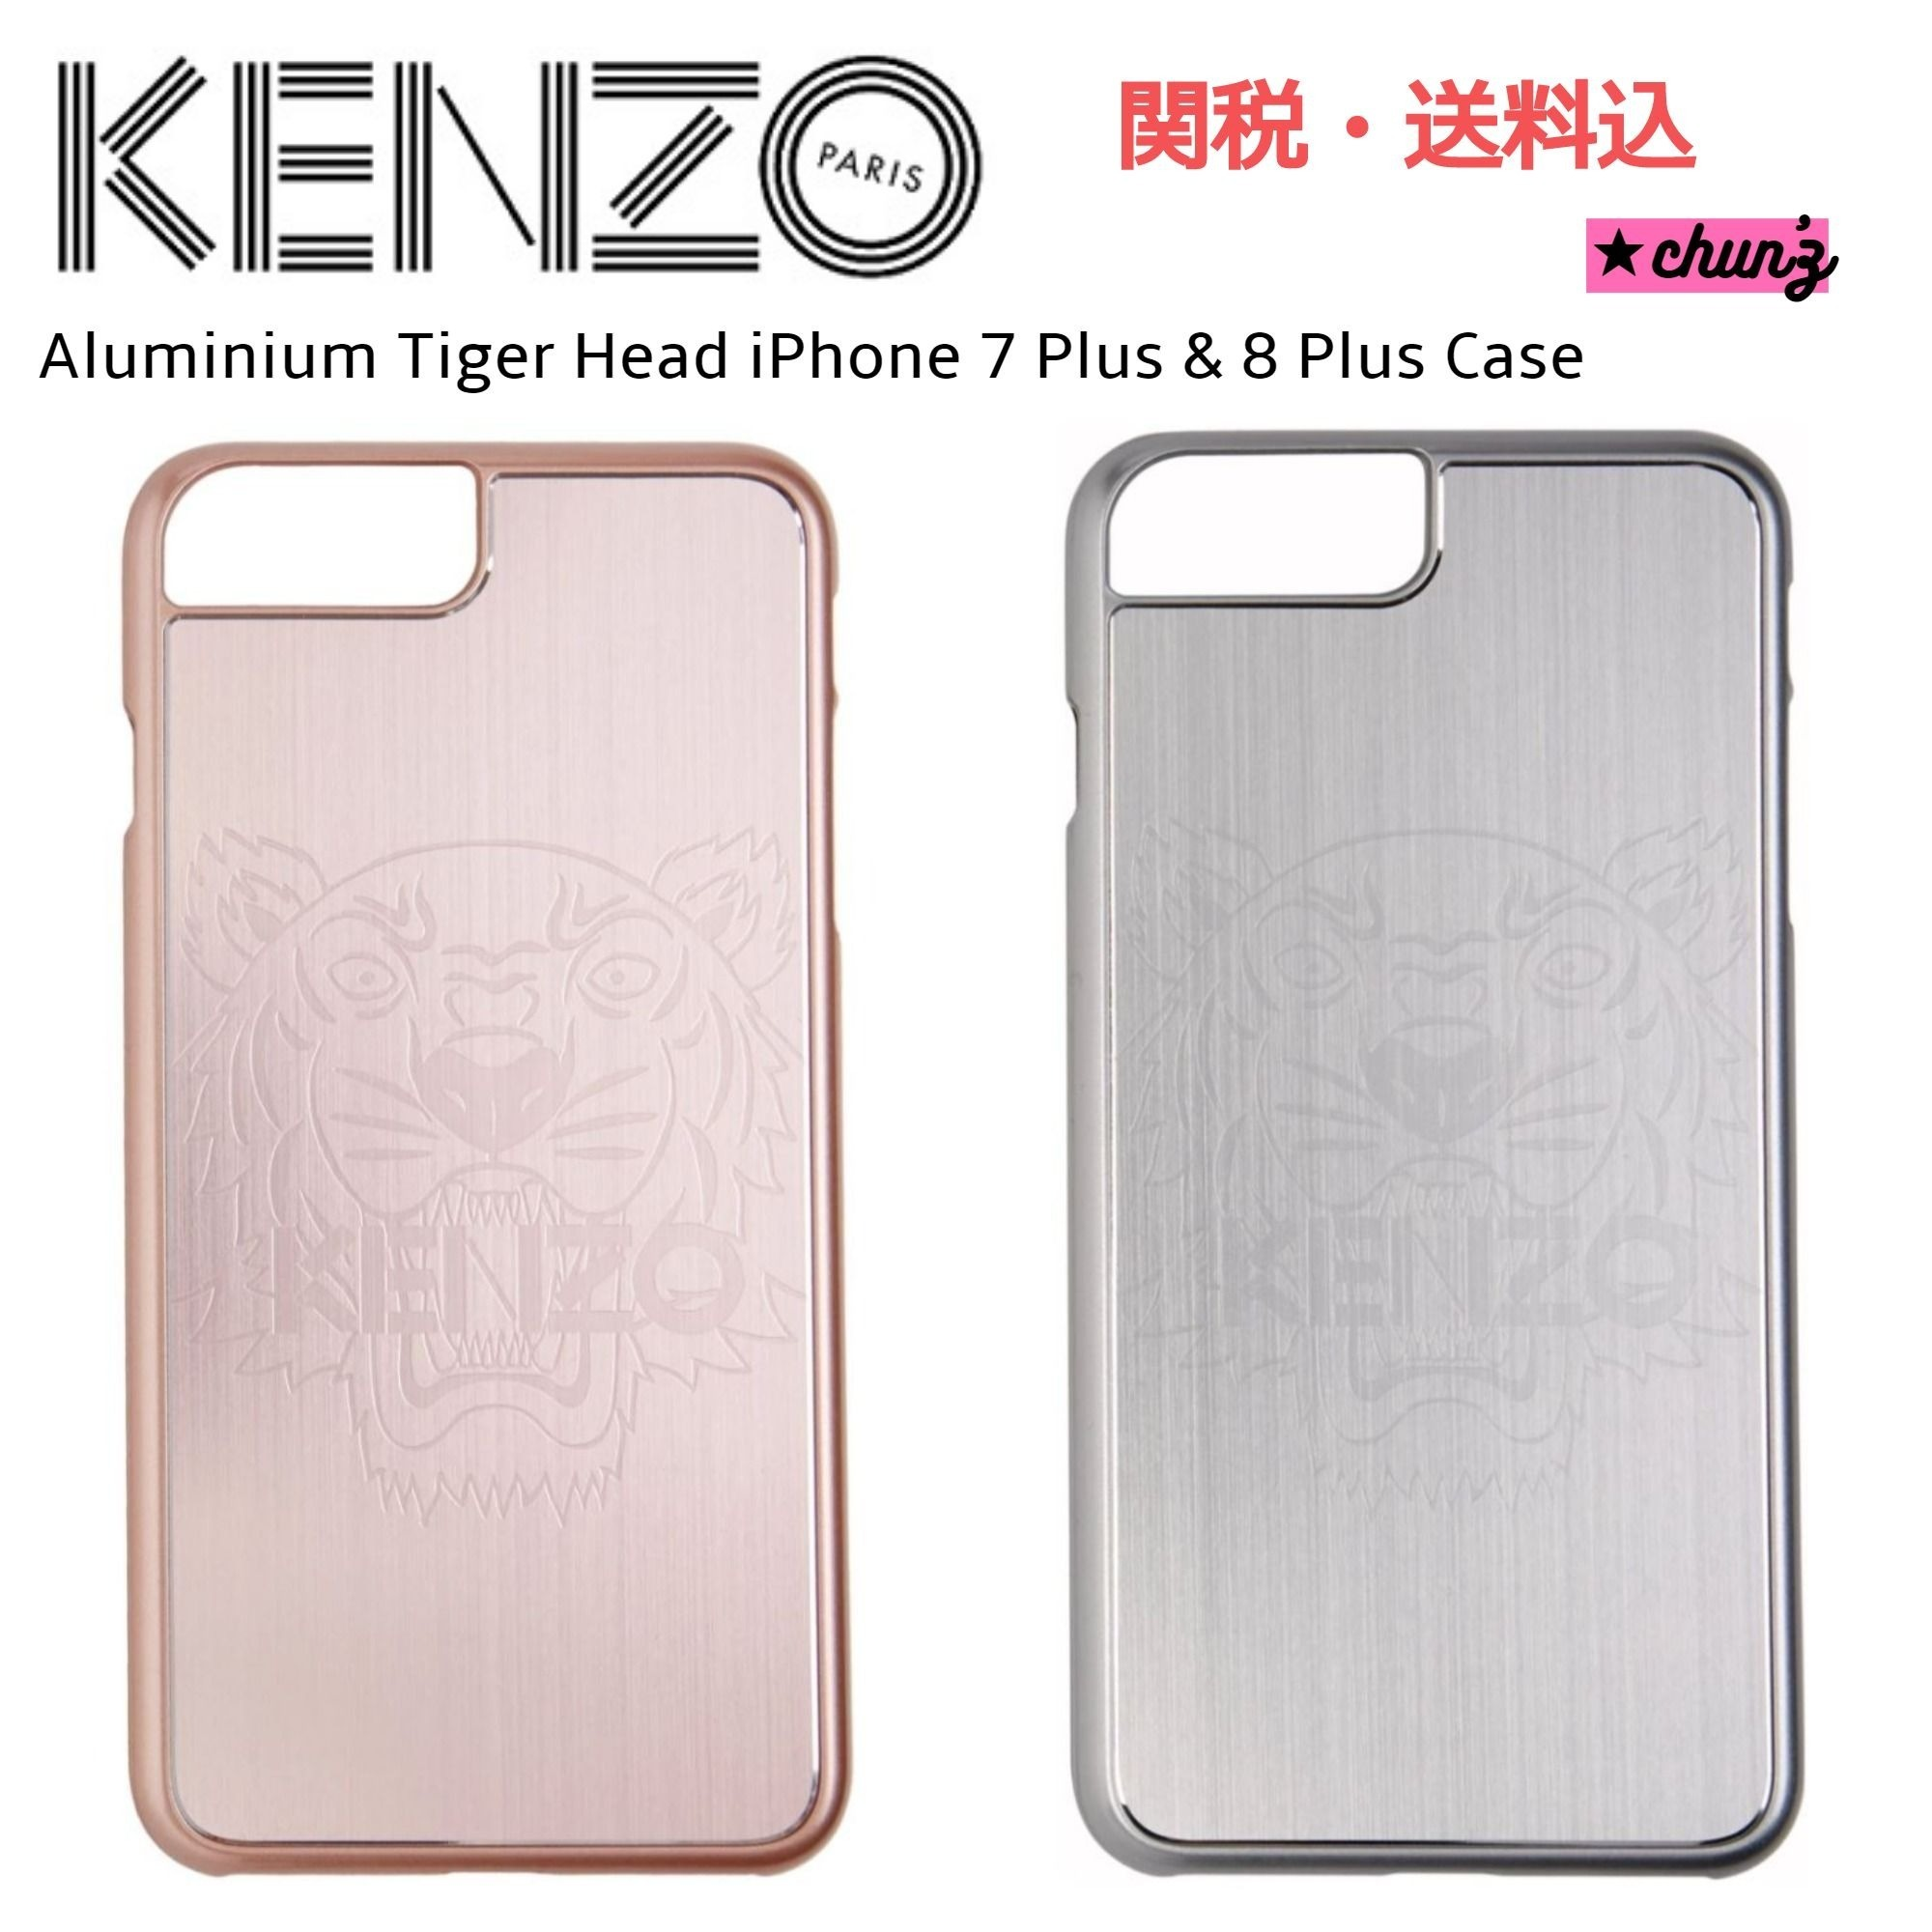 KENZO ★ iPhone 7 plus / 8 plus Aluminium Tiger Head ケース